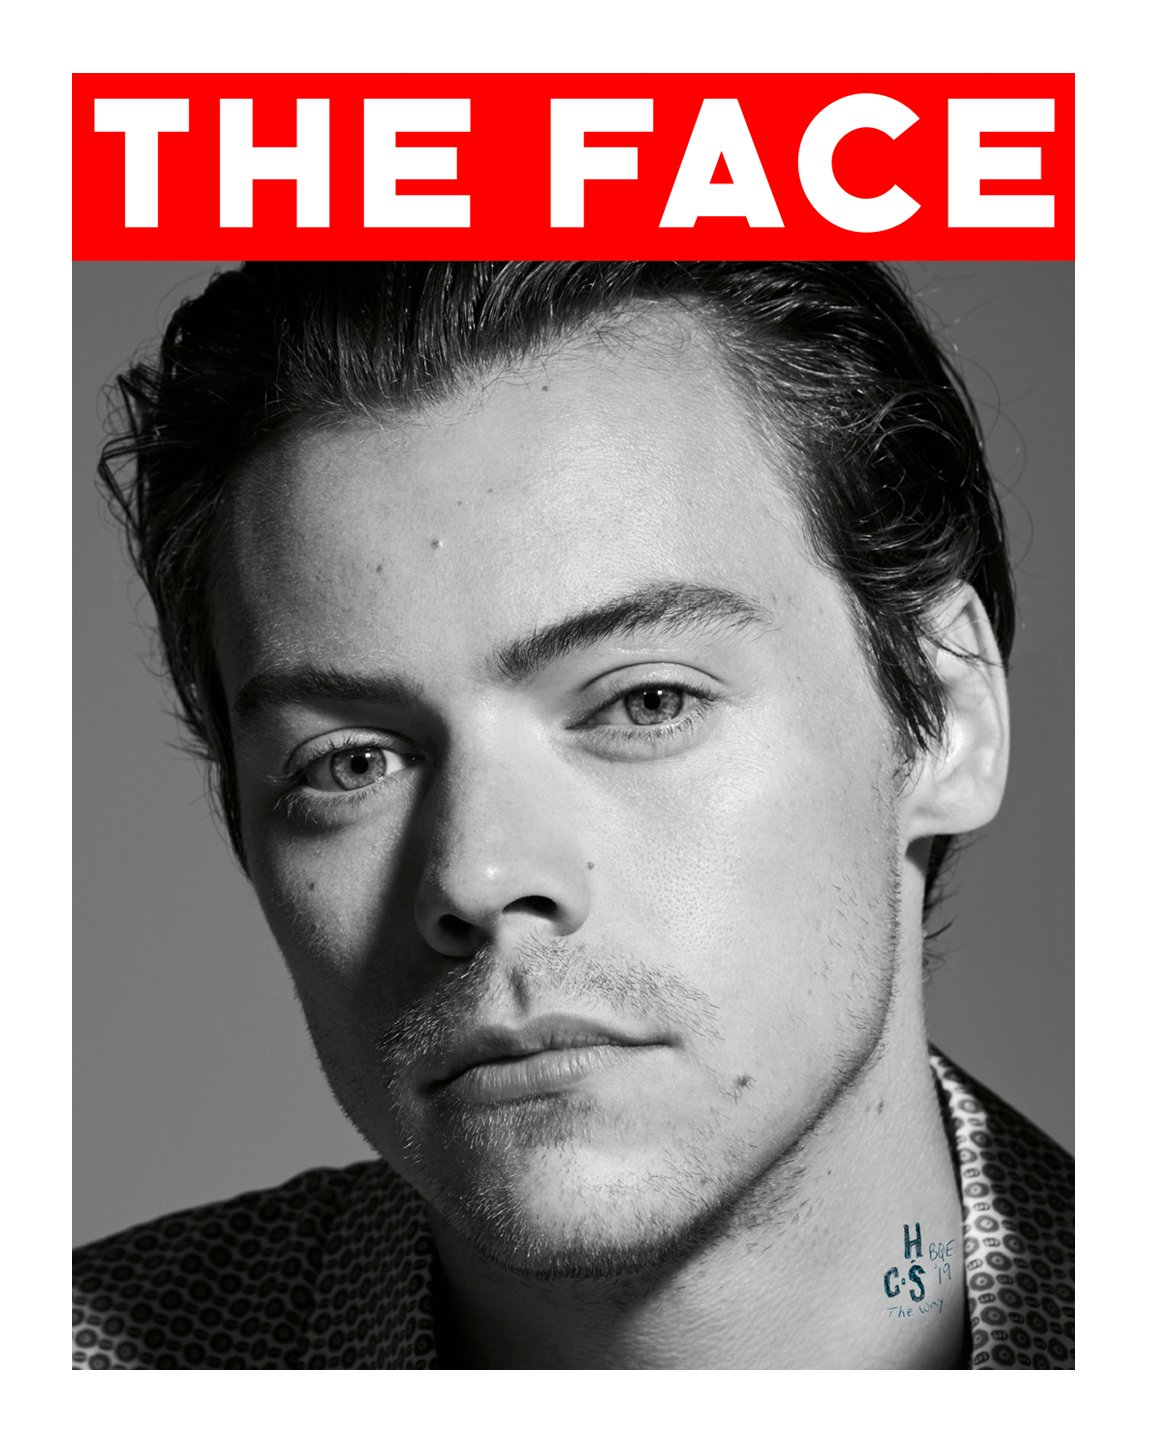 .@Harry_Styles styles—who appears in the #GucciMémoire d'une Odeur campaign, the first #GucciBeauty universal fragrance by #AlessandroMichele—features on @TheFaceMagazine's September cover wearing #Gucci. #GucciEditorials Photography by: #CollierSchorr Styling: #DannyReed https://t.co/0gwl394Epa